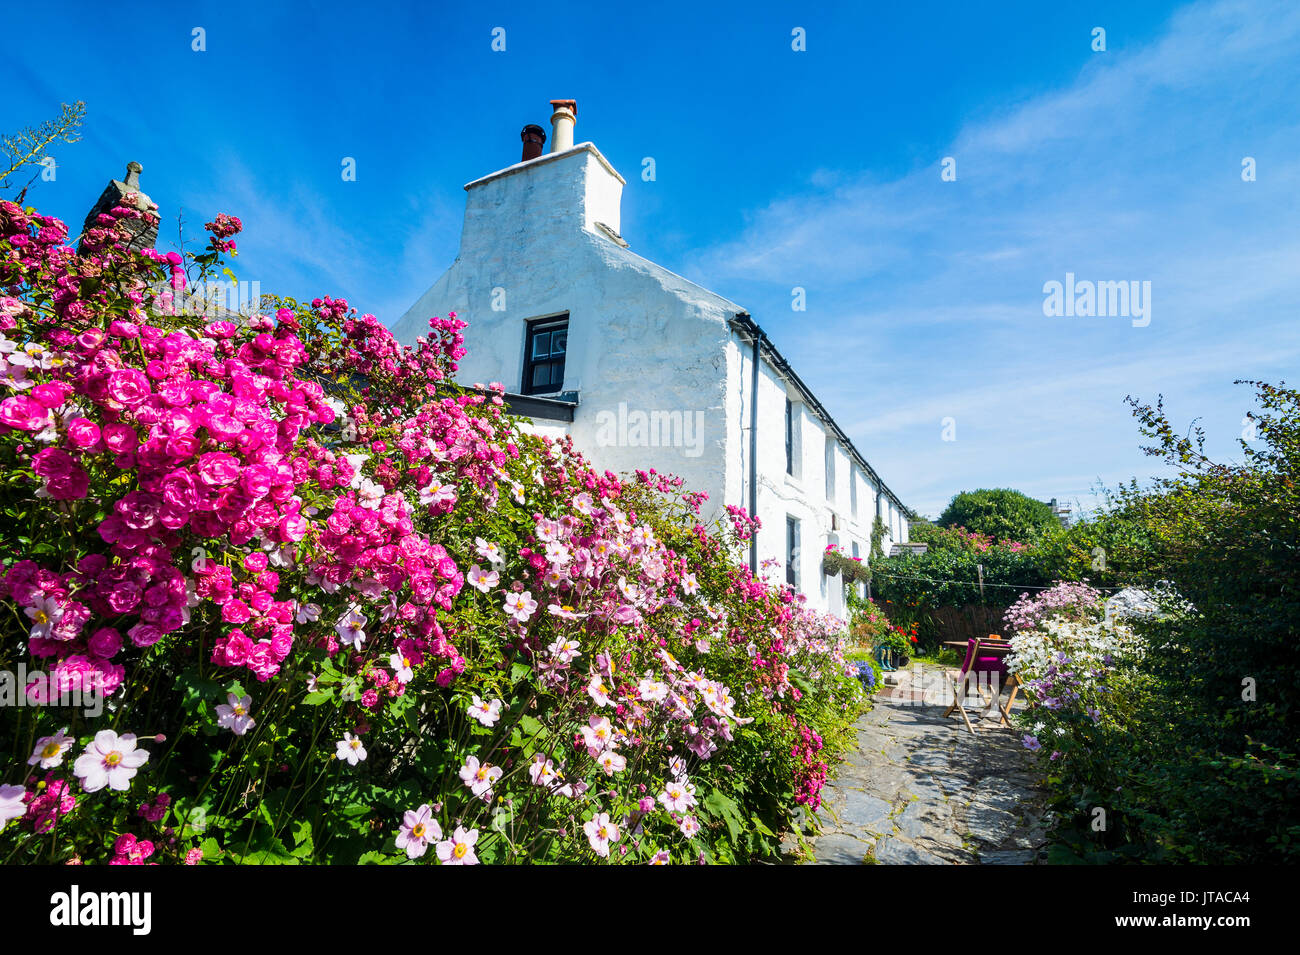 Living museum Cregneash village, Isle of Man, crown dependency of the United Kingdom, Europe - Stock Image